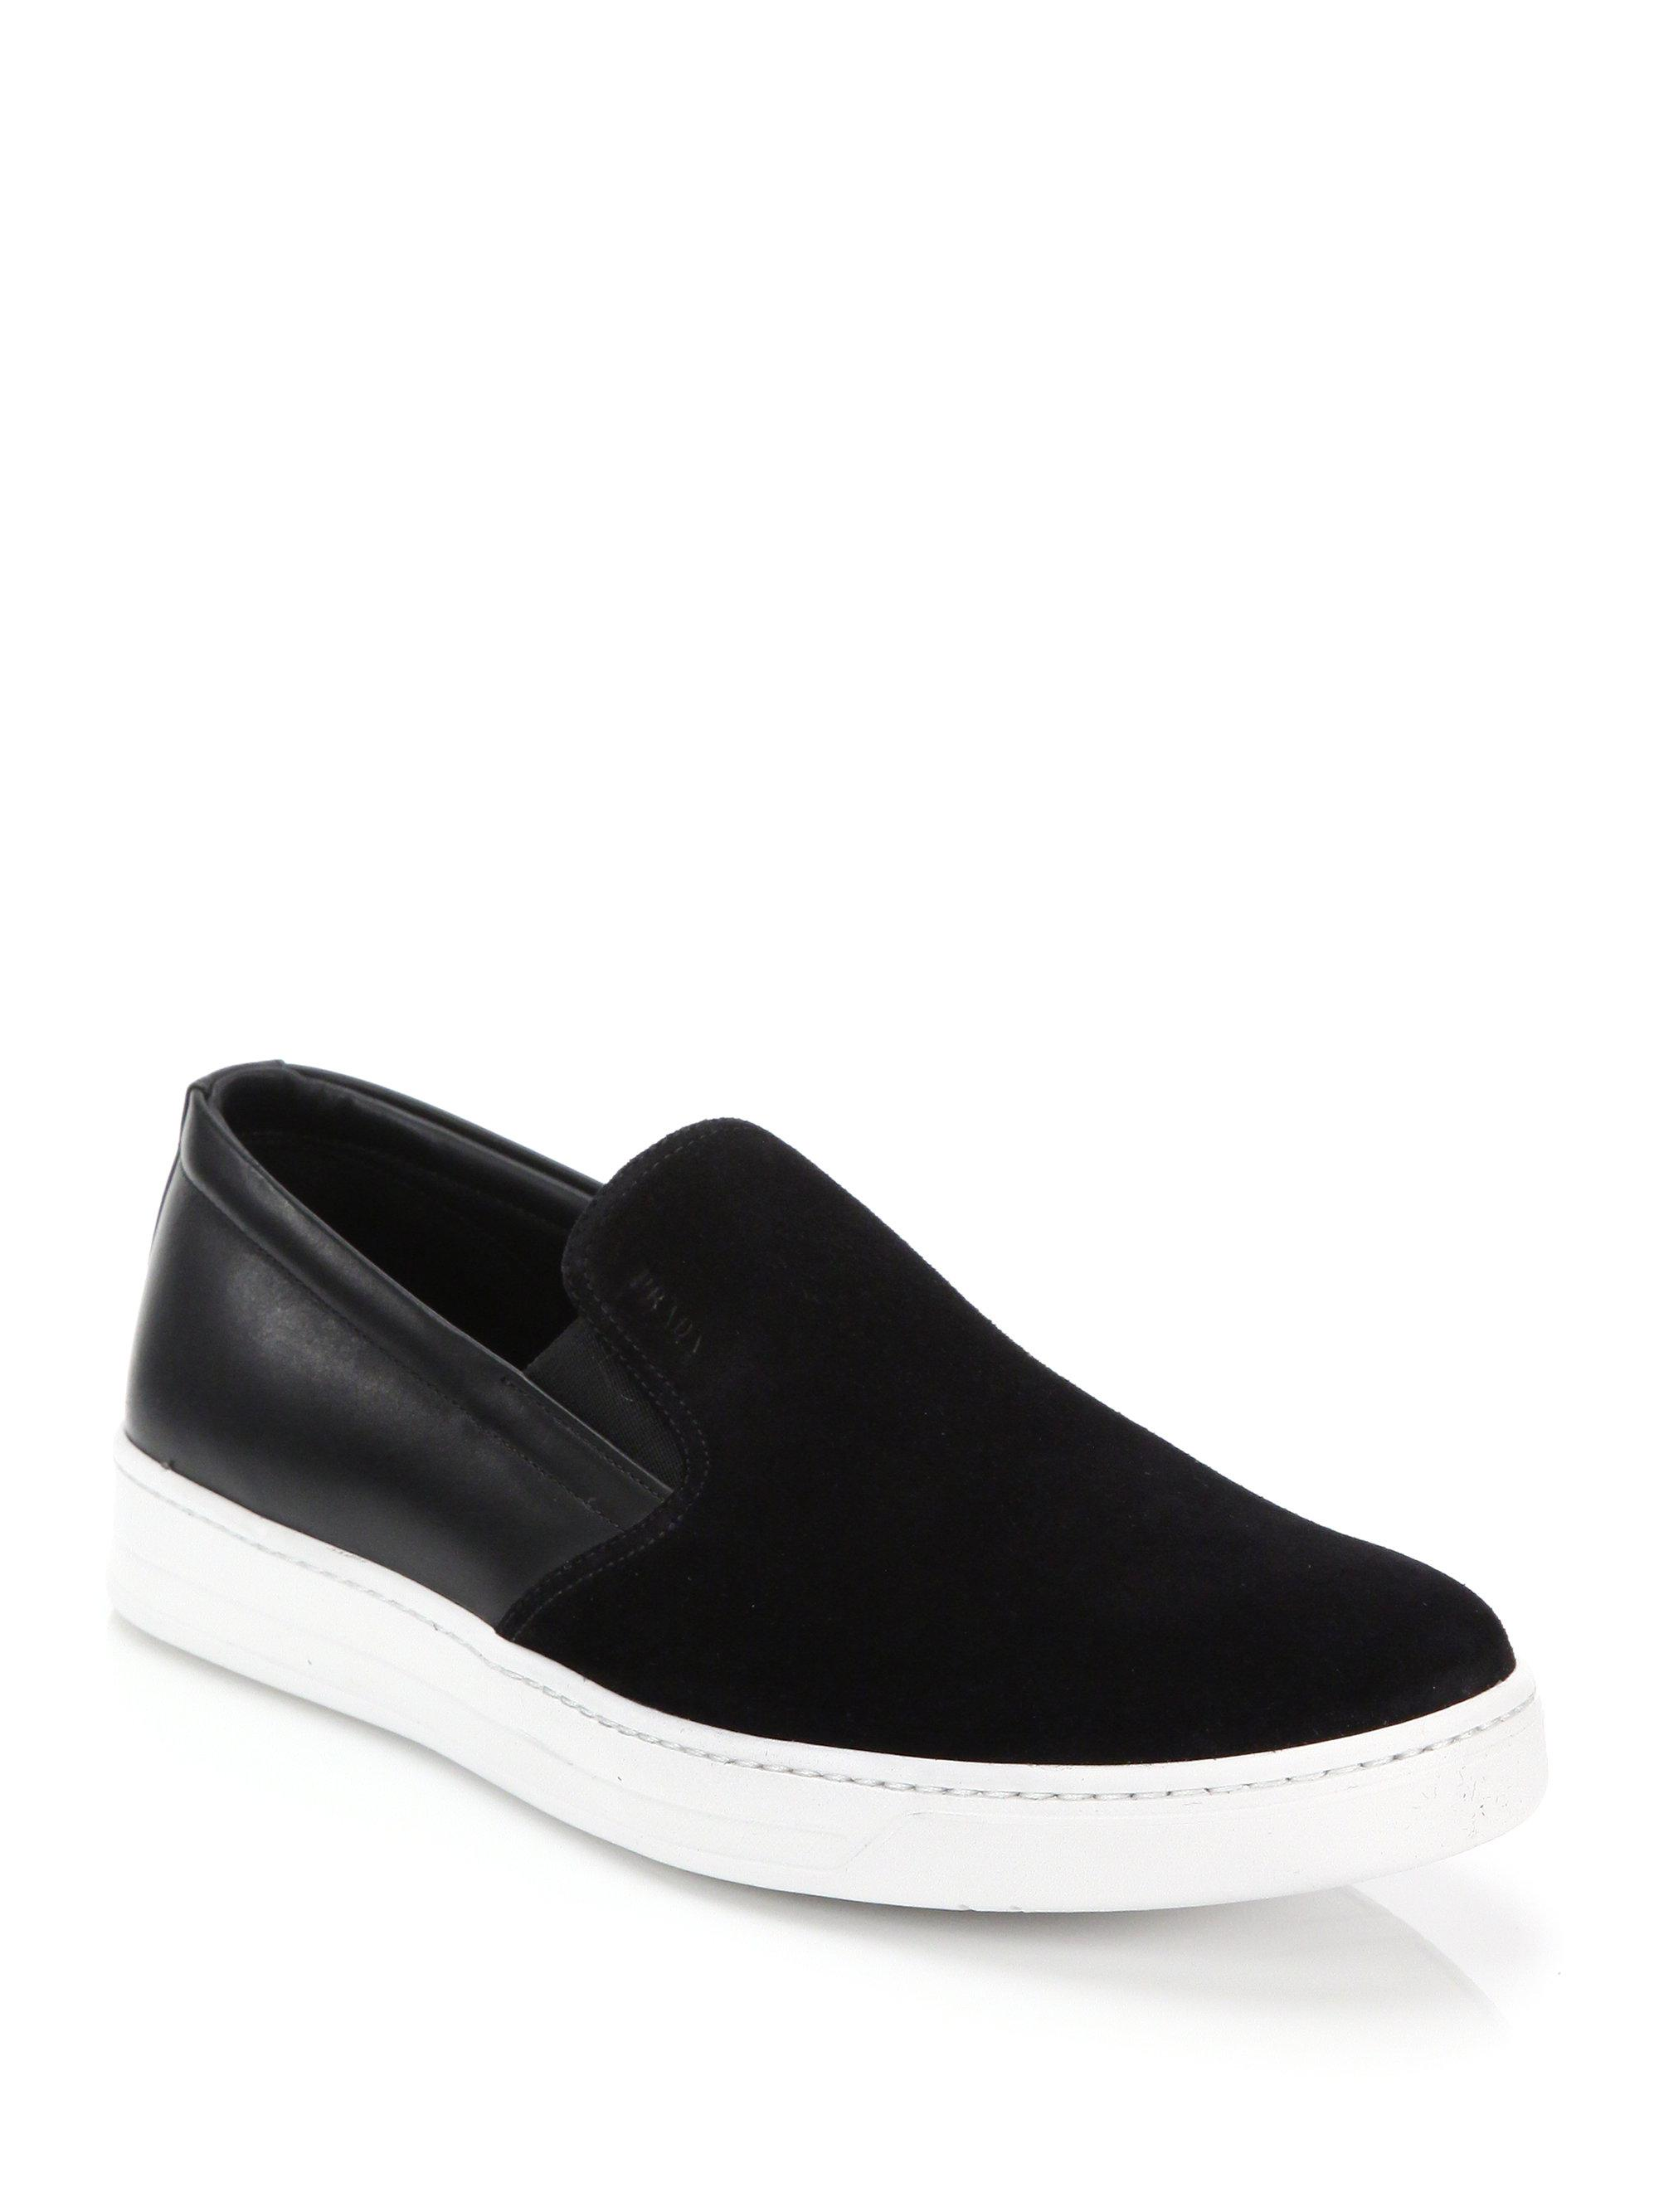 Prada Leather & Suede Sneakers RhaFn